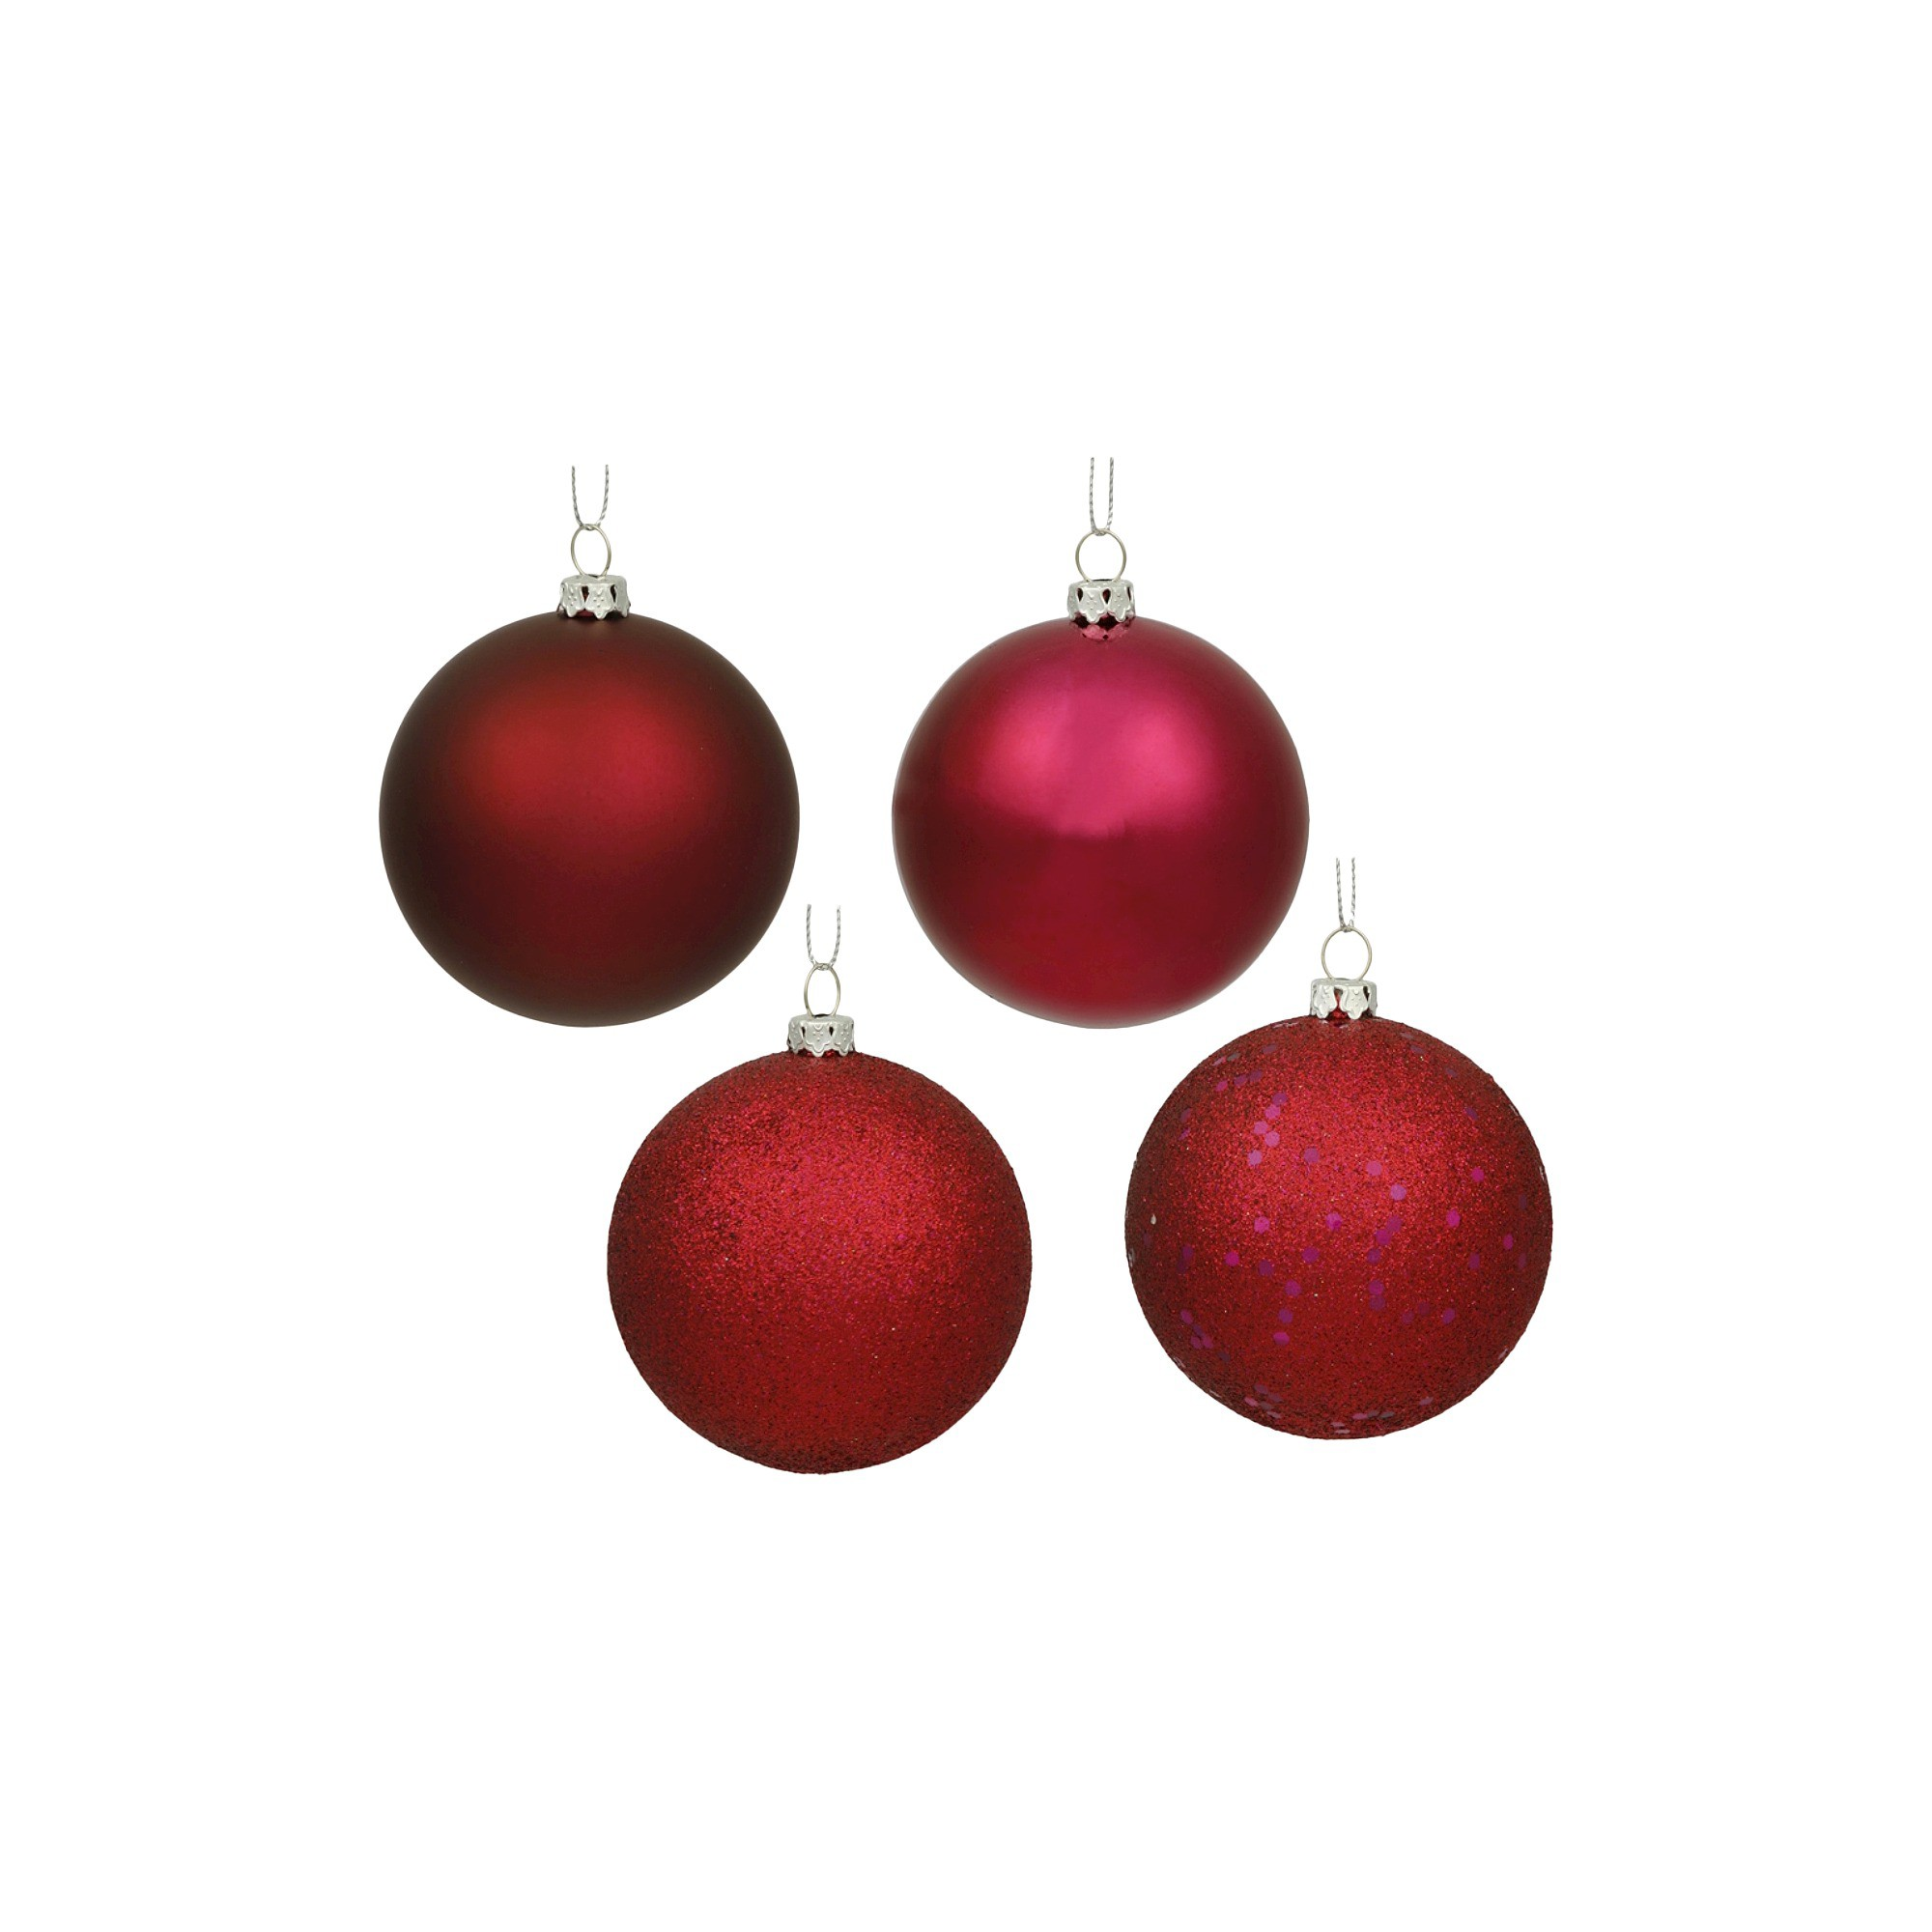 6 Assorted Ornament Ball Wine Red 4 Per Box